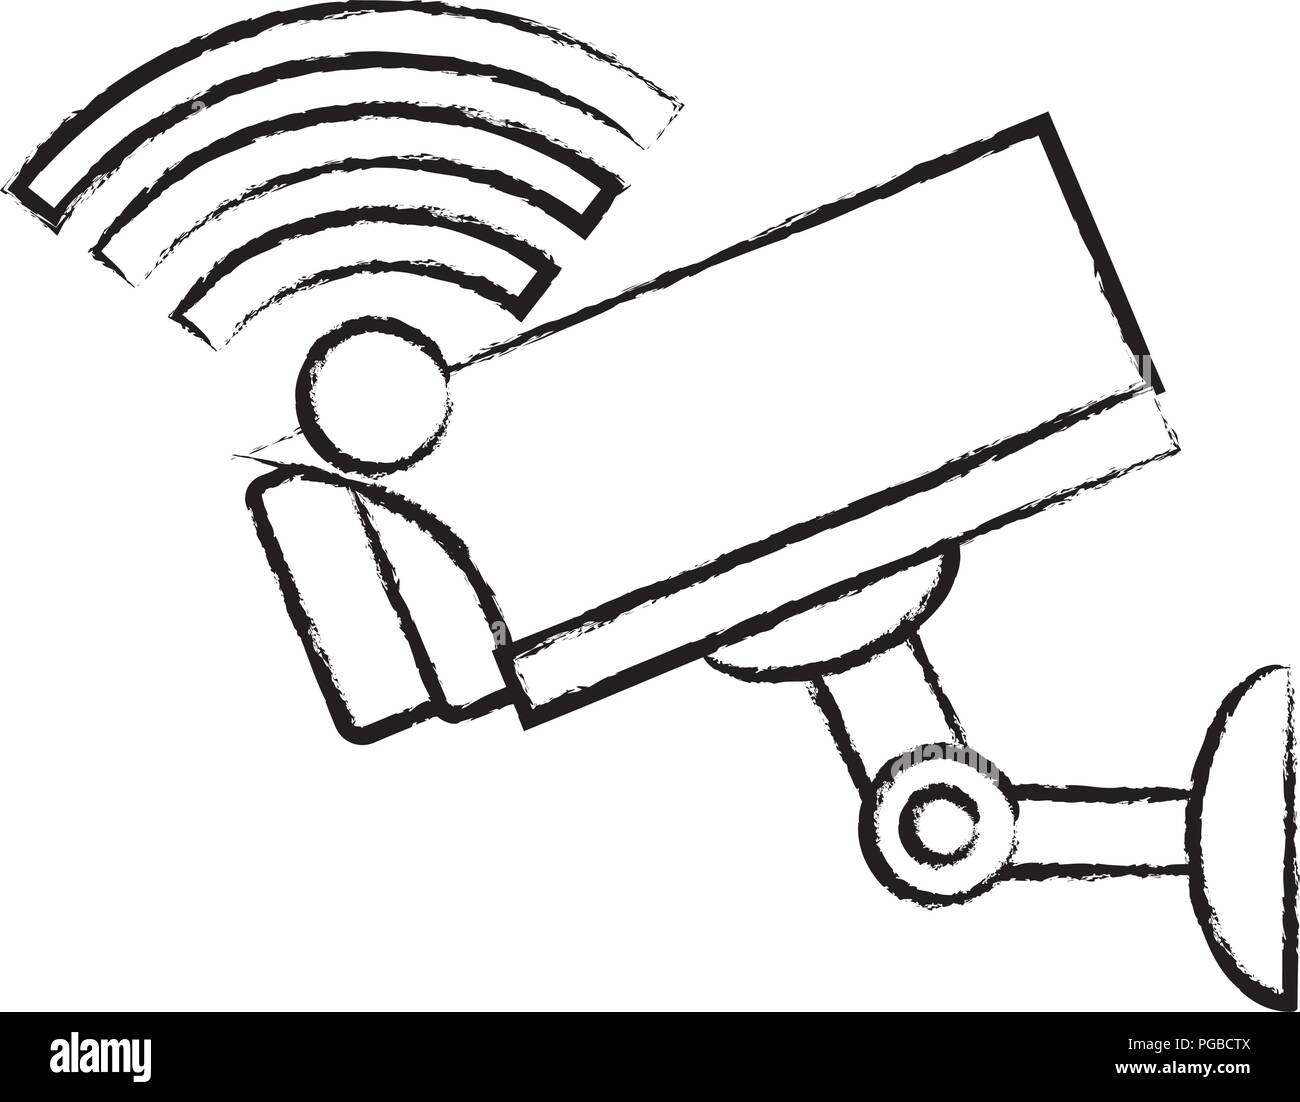 wifi symbol and surveillance camera icon over white background, vector illustration Stock Vector